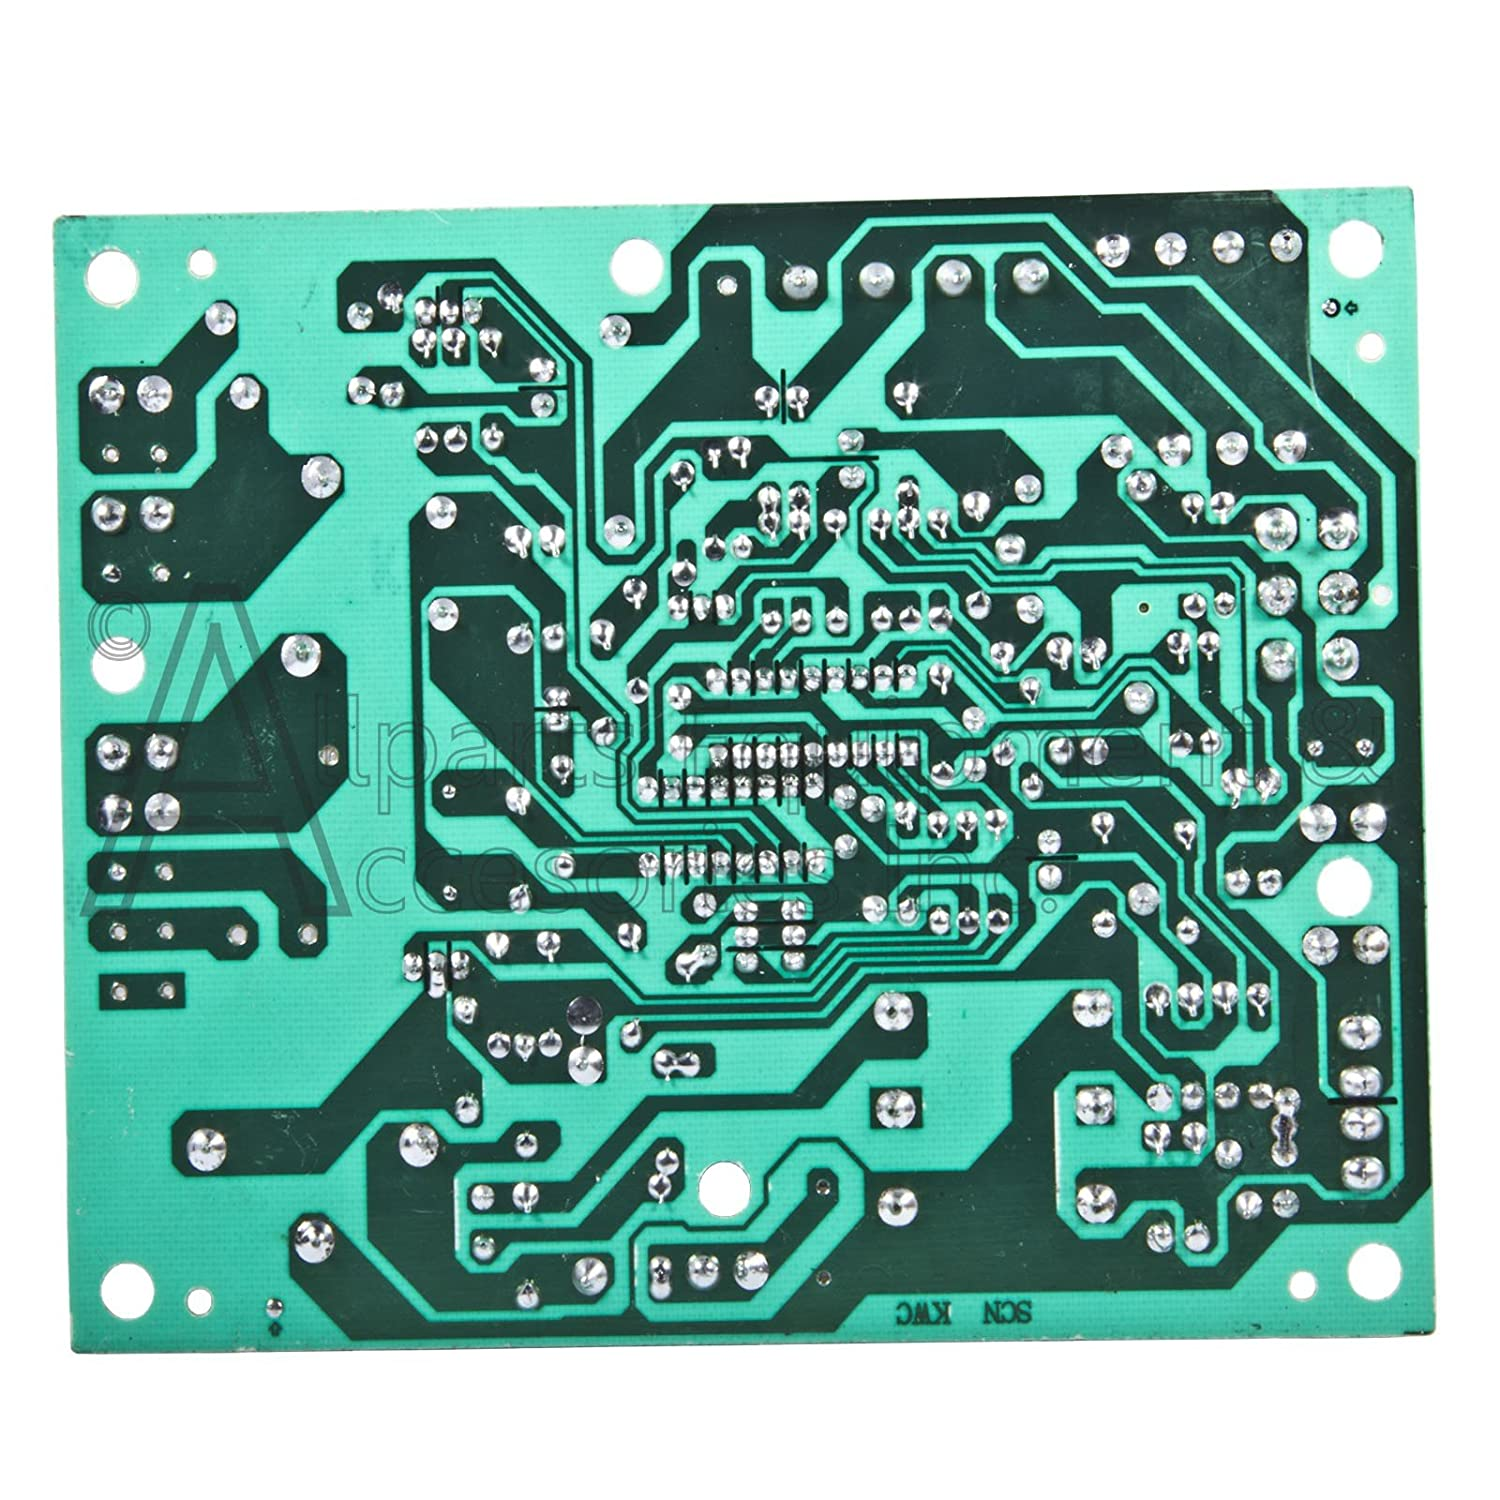 60105 Ignition Control Board Pcb For Mr Heater Enerco Mhu45 Hsu45 Circuit Replacement Household Furnace Boards Hsu75